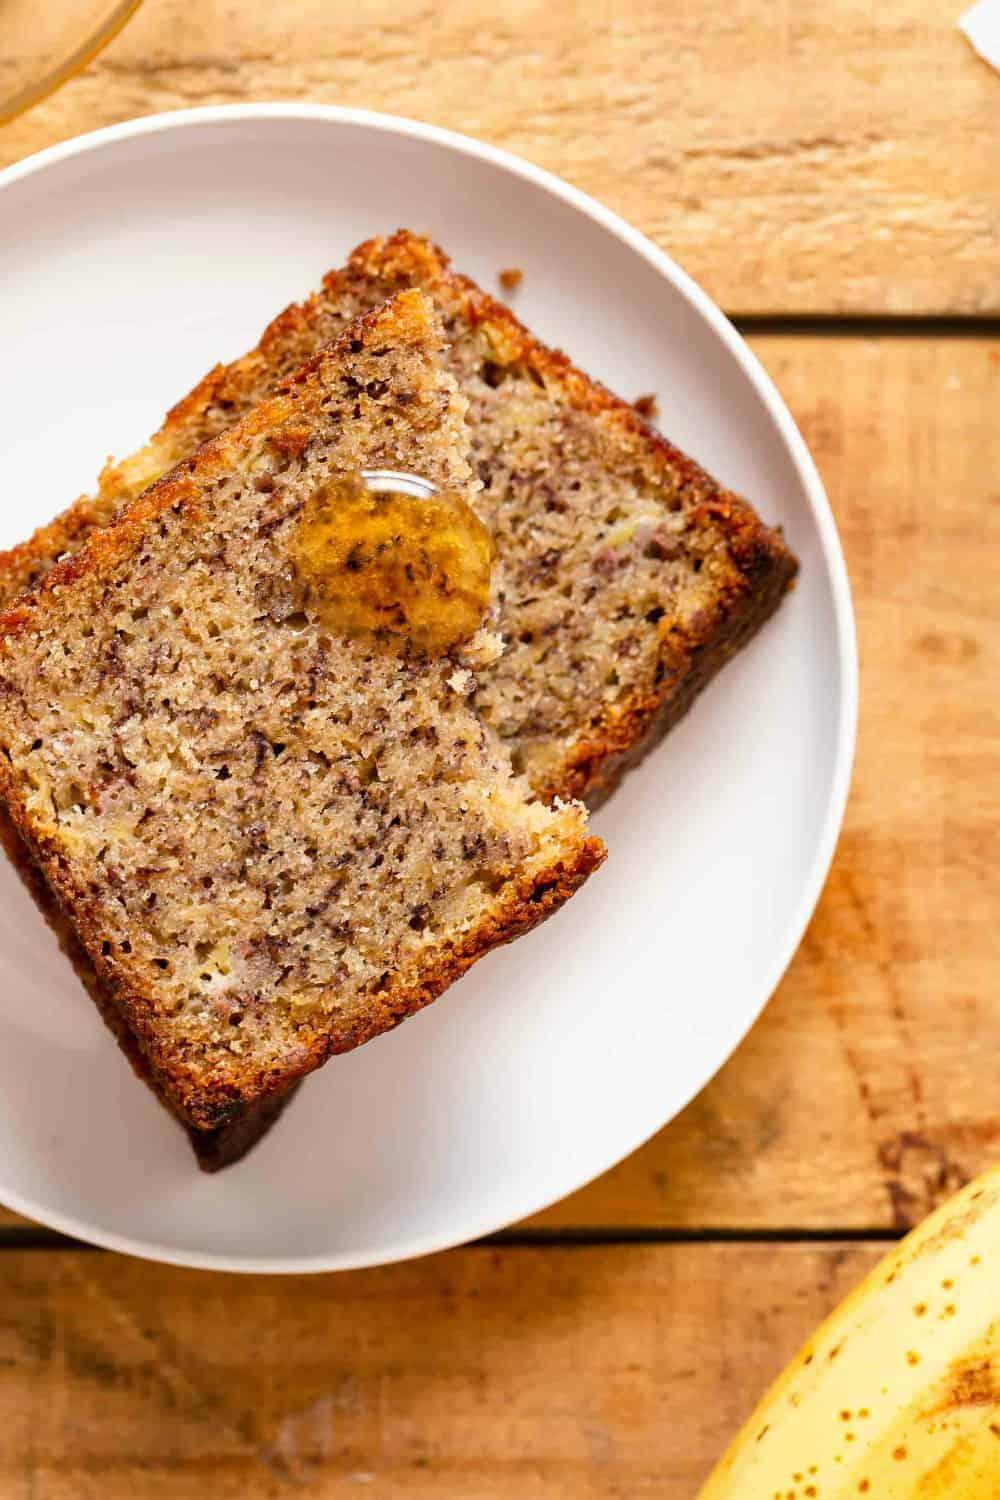 Slices of Dominique Ansel's banana bread, drizzled with honey